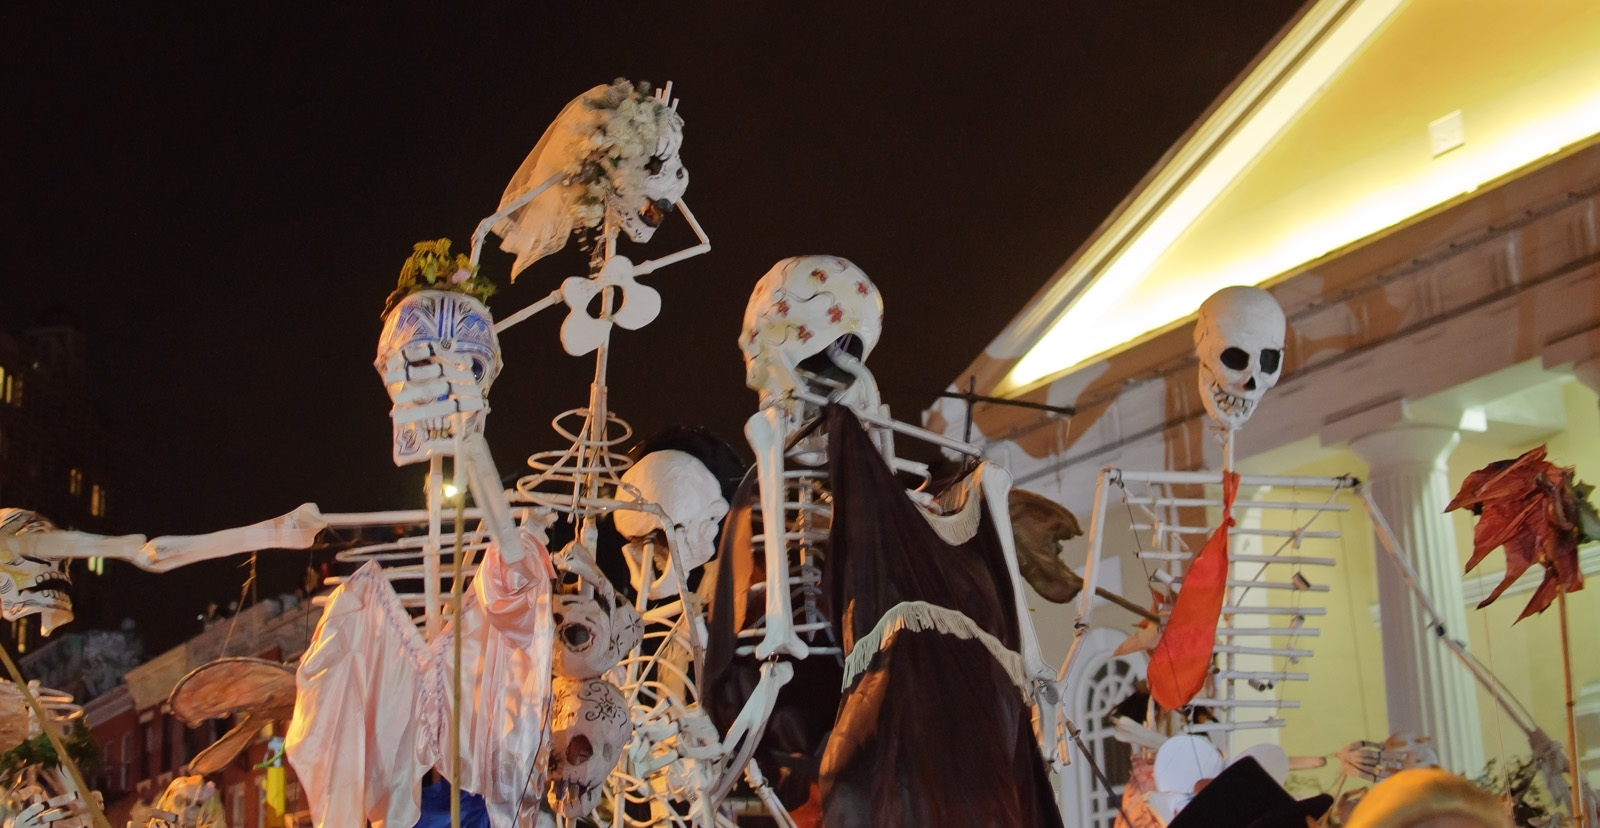 Village Halloween Parade in New York City